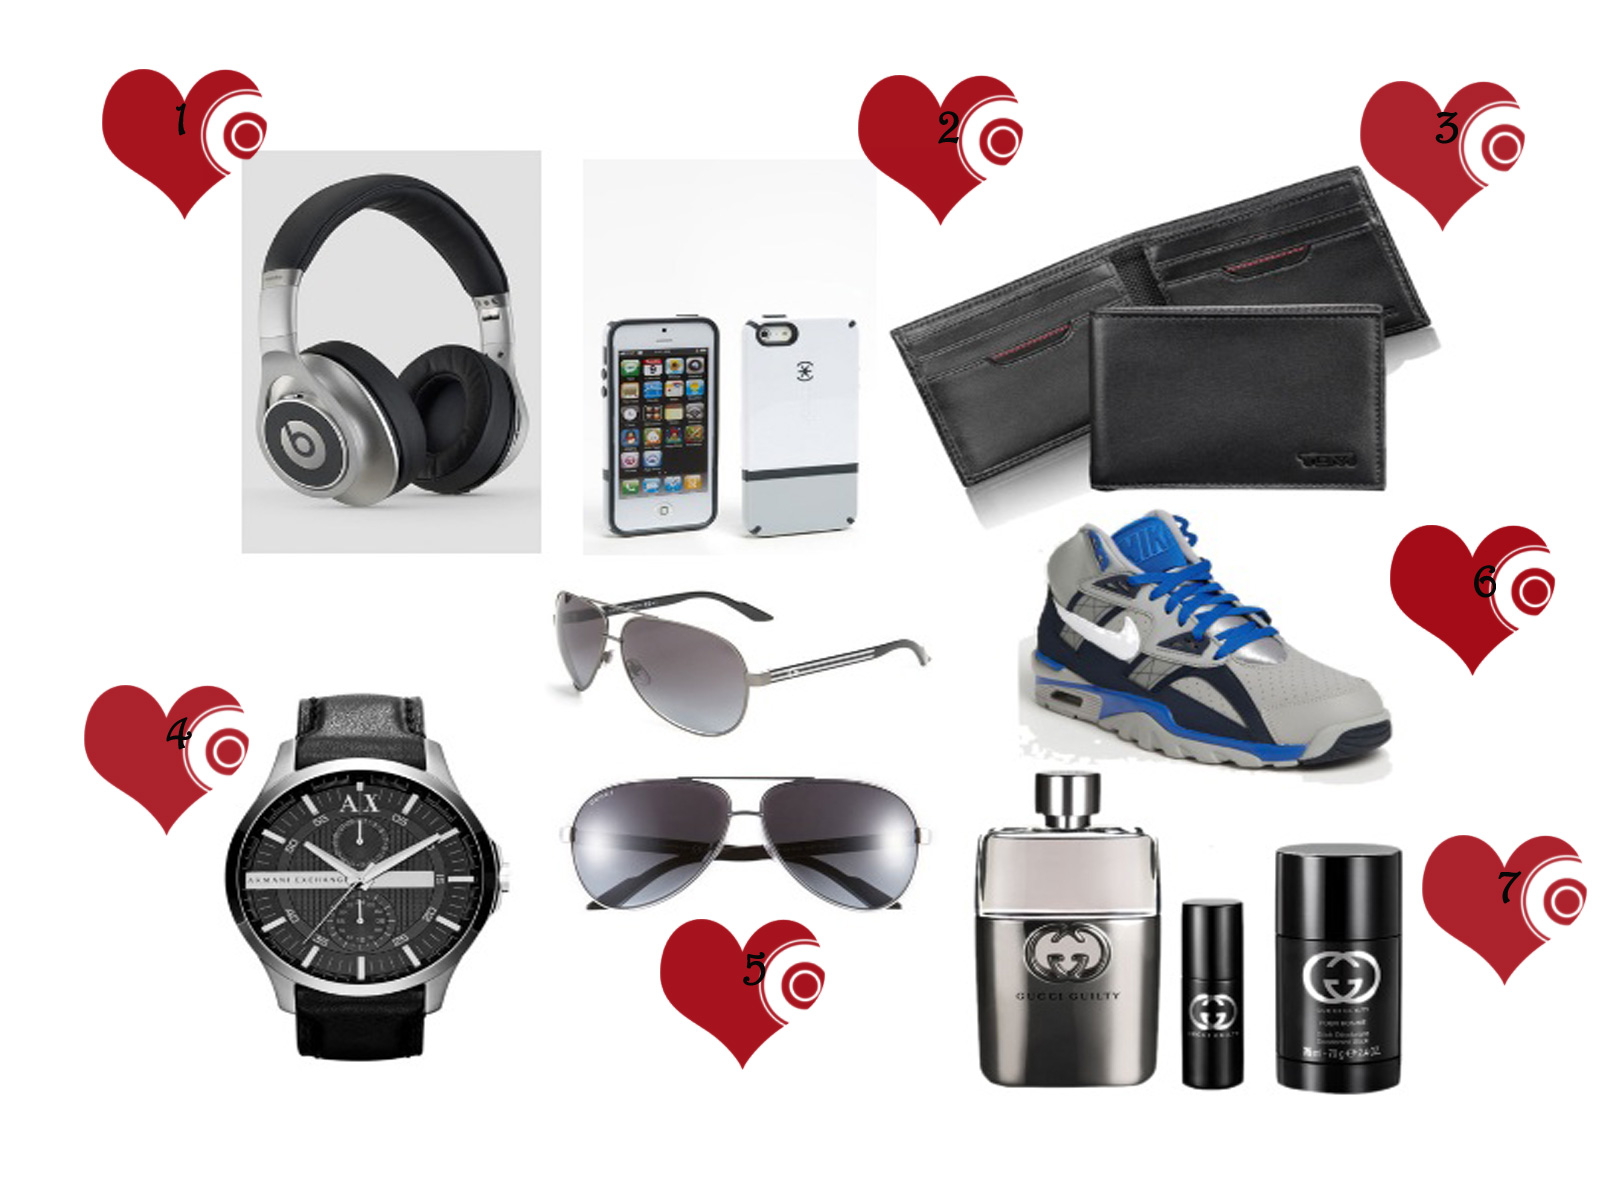 2015} Happy Valentine's Day Gifts & Presents Ideas for Him ...